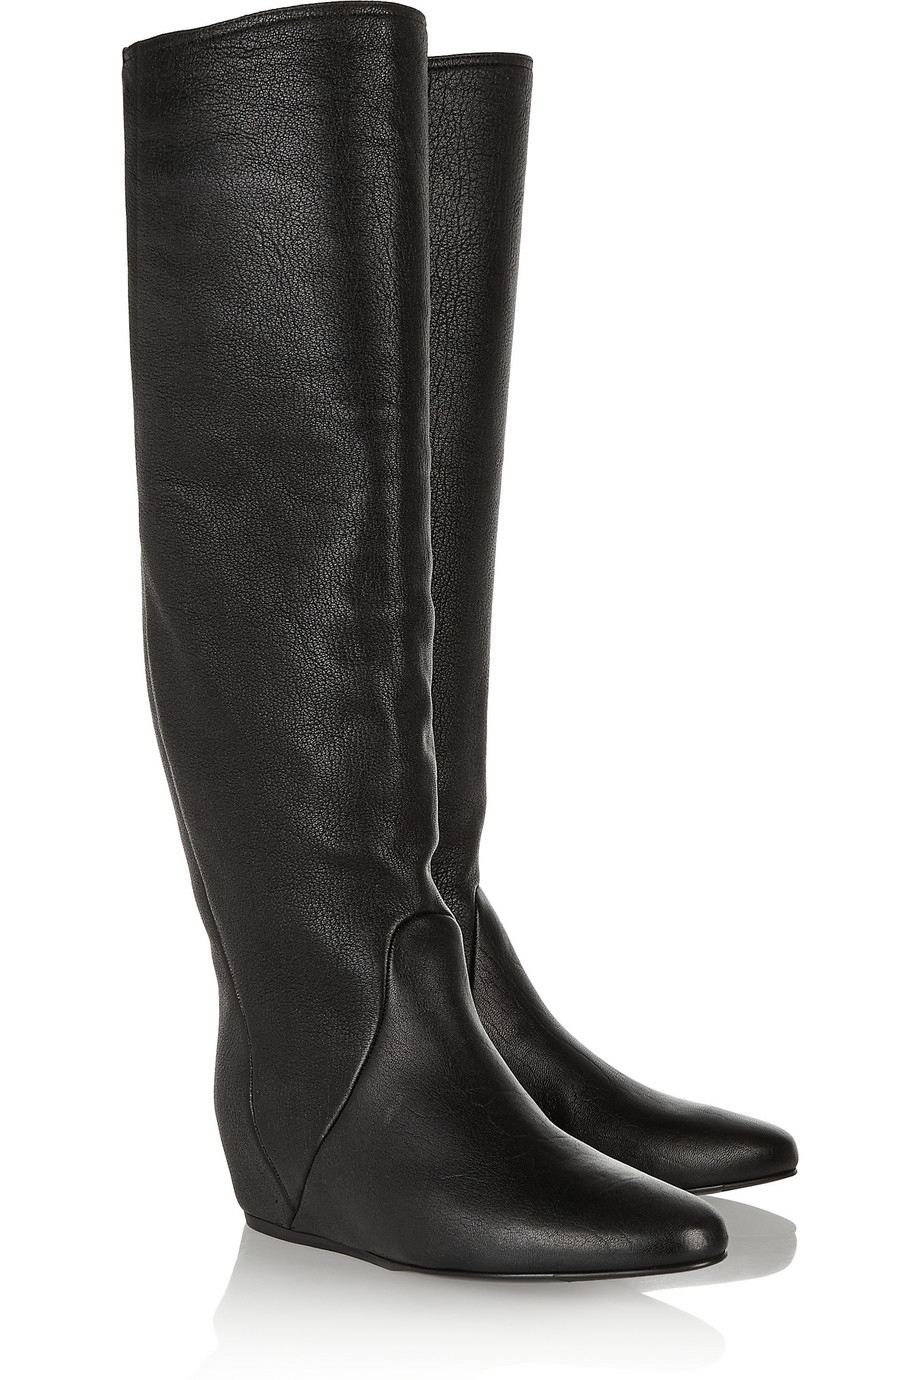 90ed9a4e3da Lyst - Lanvin Textured-leather Wedge Knee Boots in Black